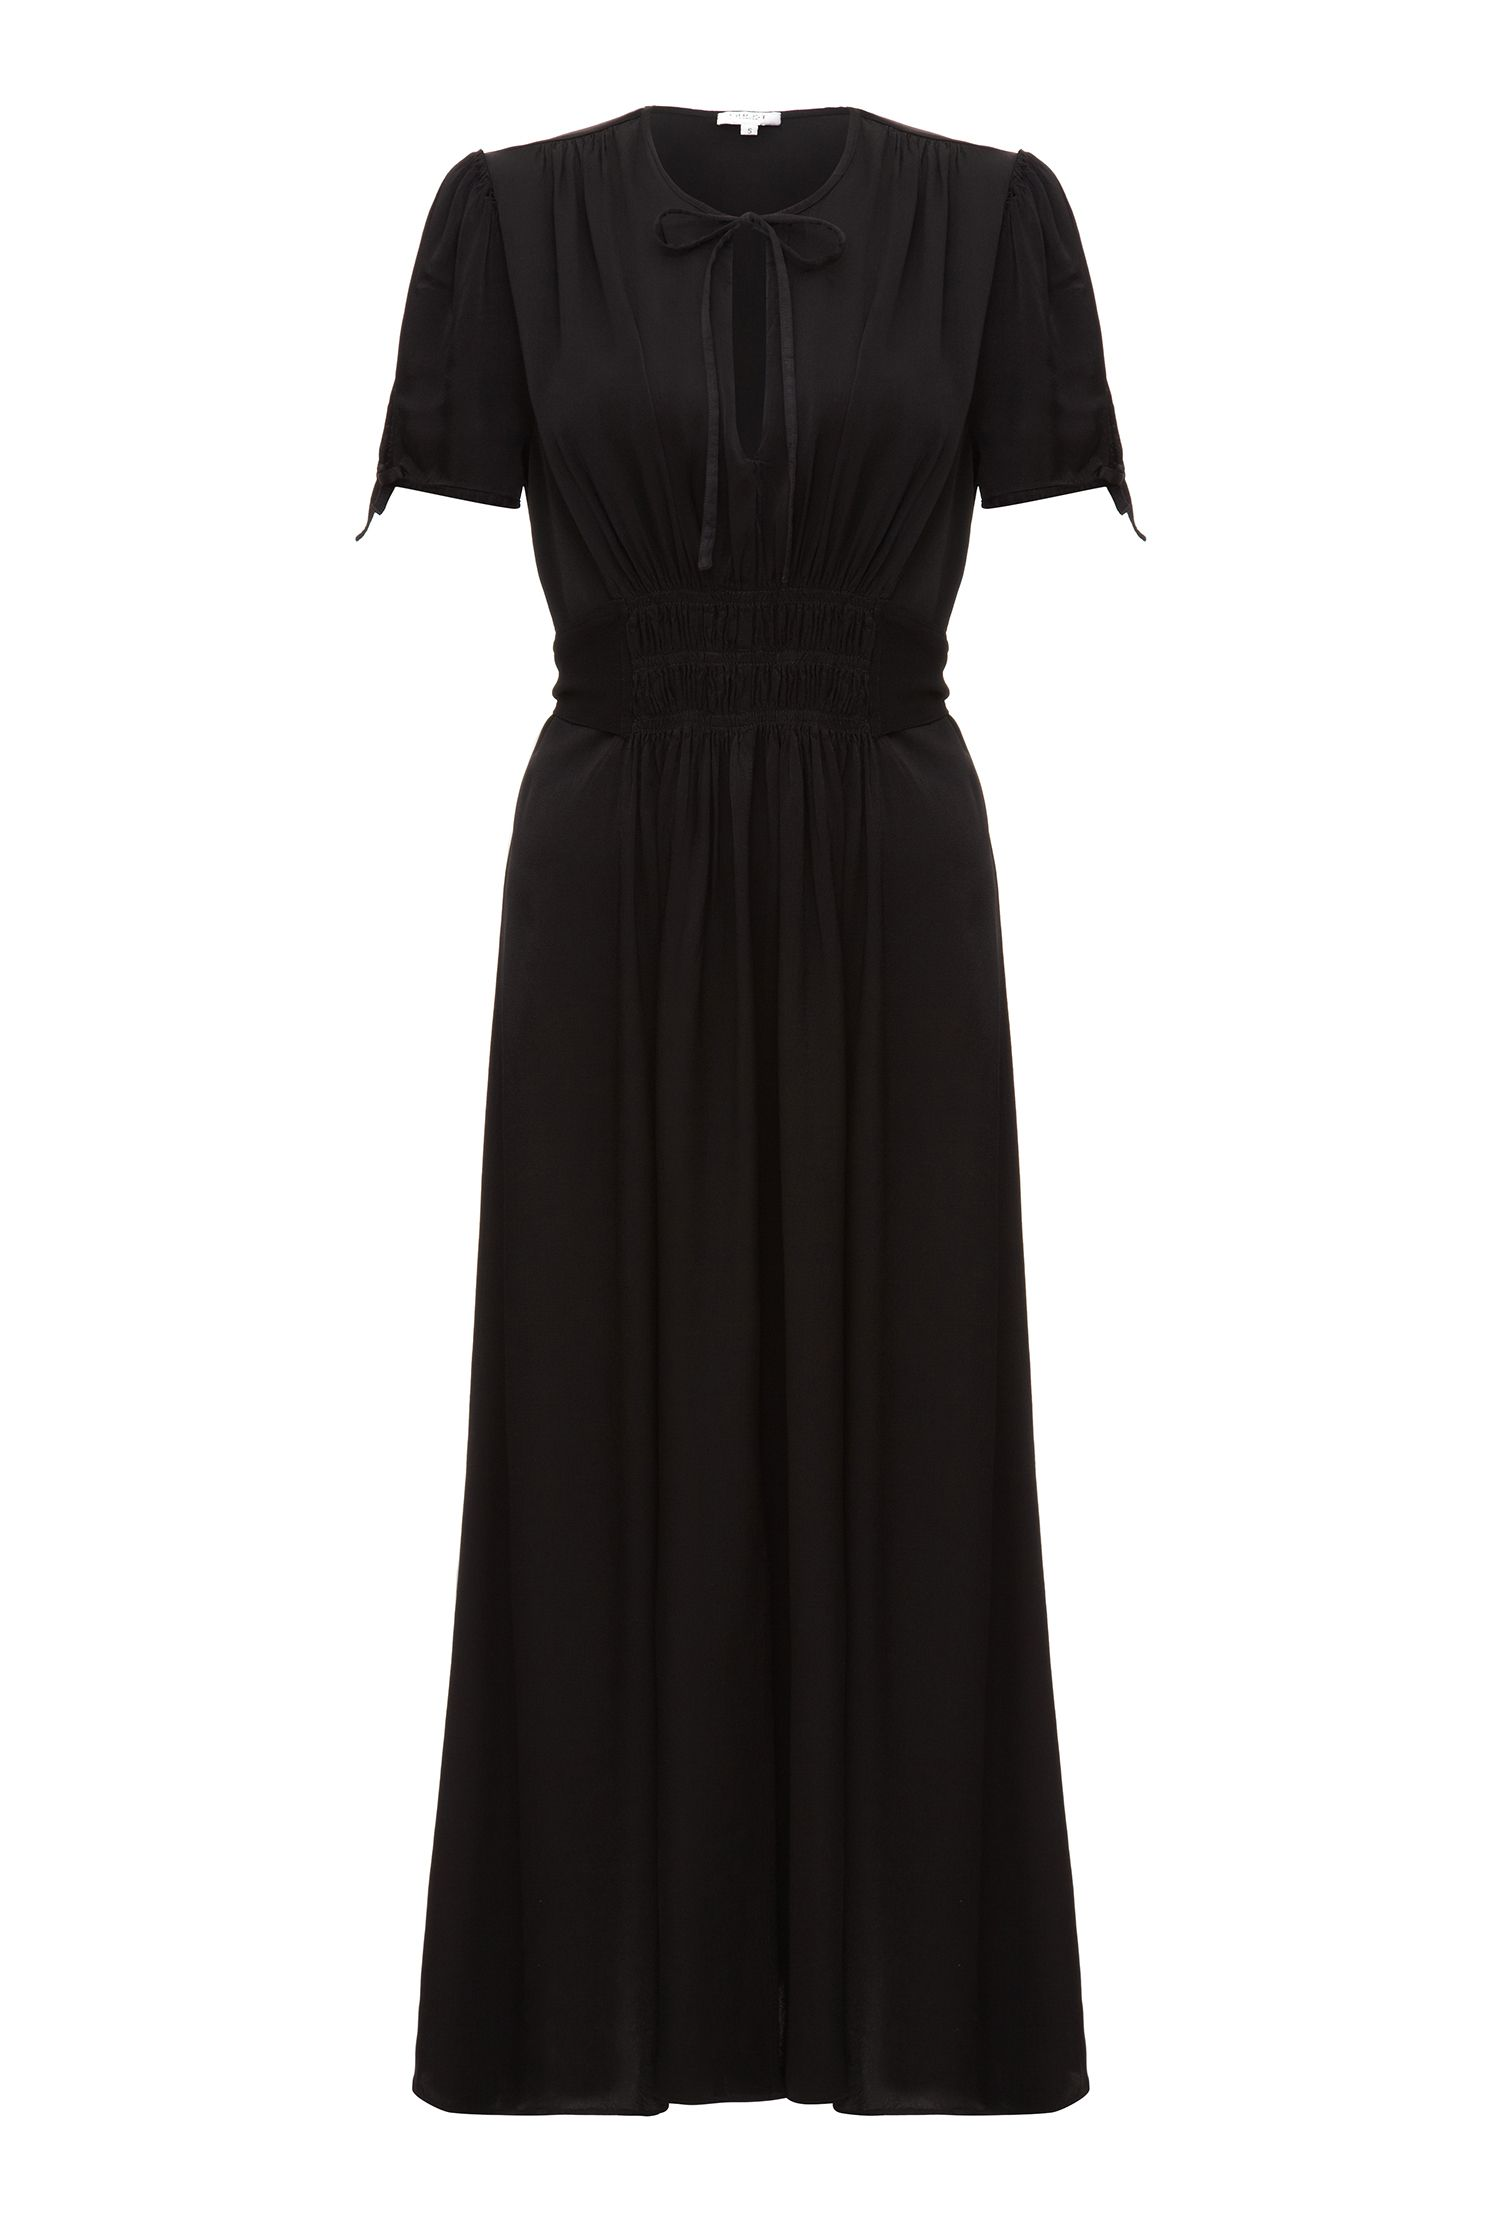 Ghost Ella Dress Black $145.00 AT vintagedancer.com